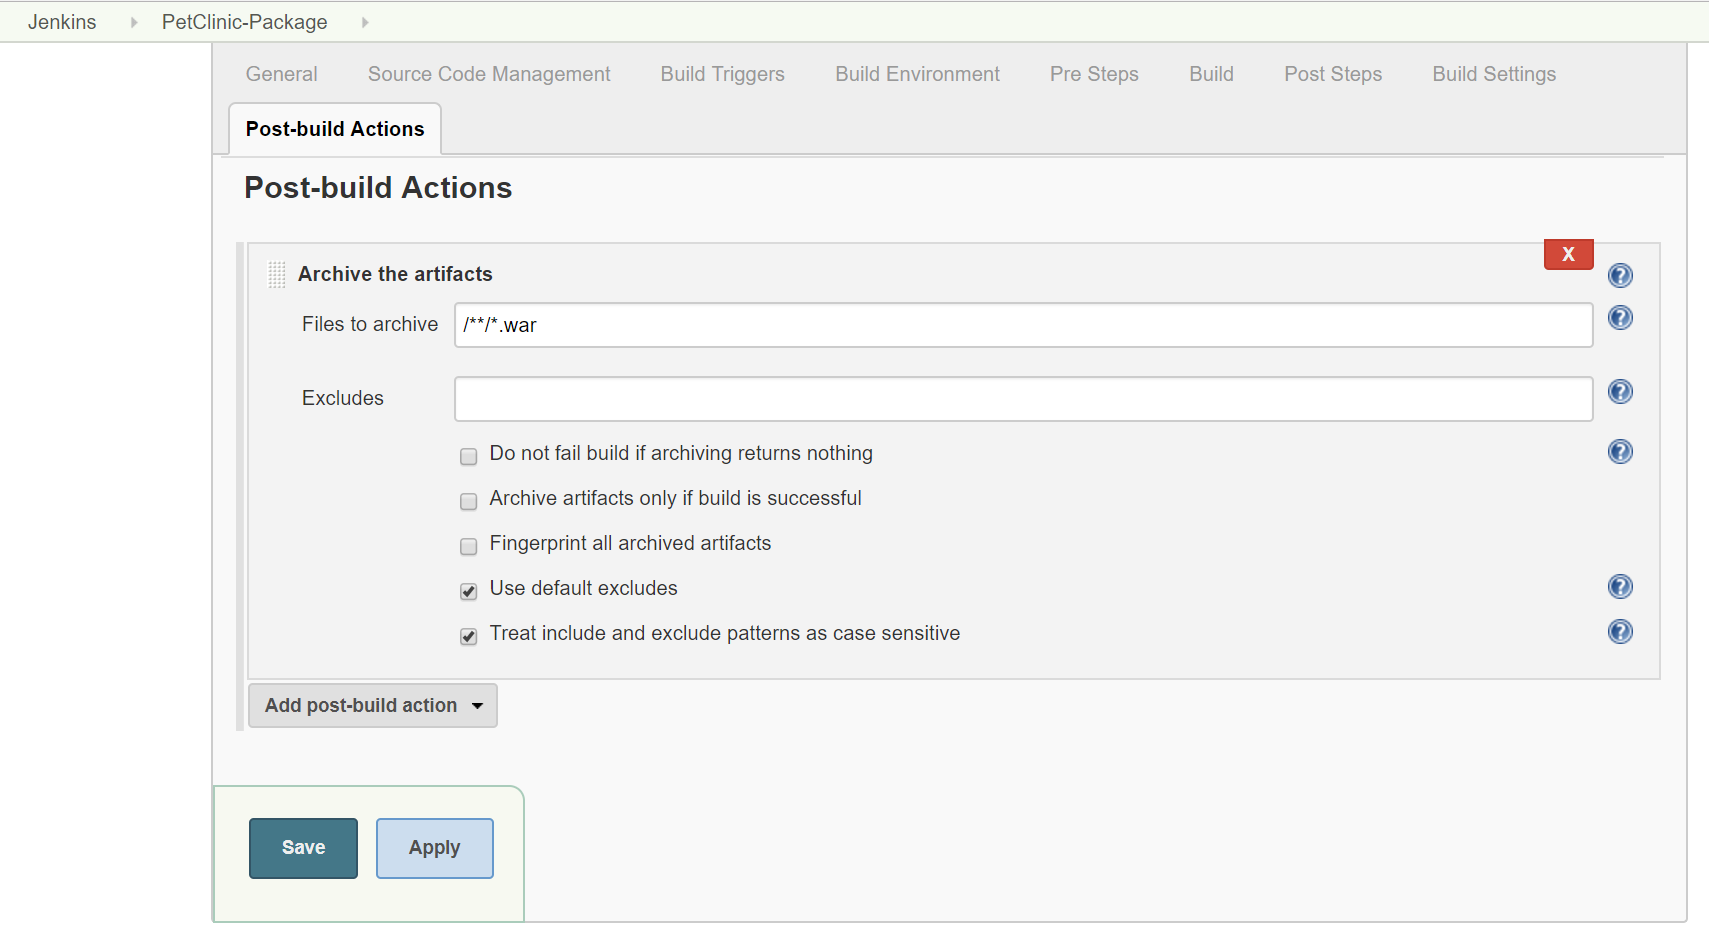 Archiving artifacts - Jenkins 2 x Continuous Integration